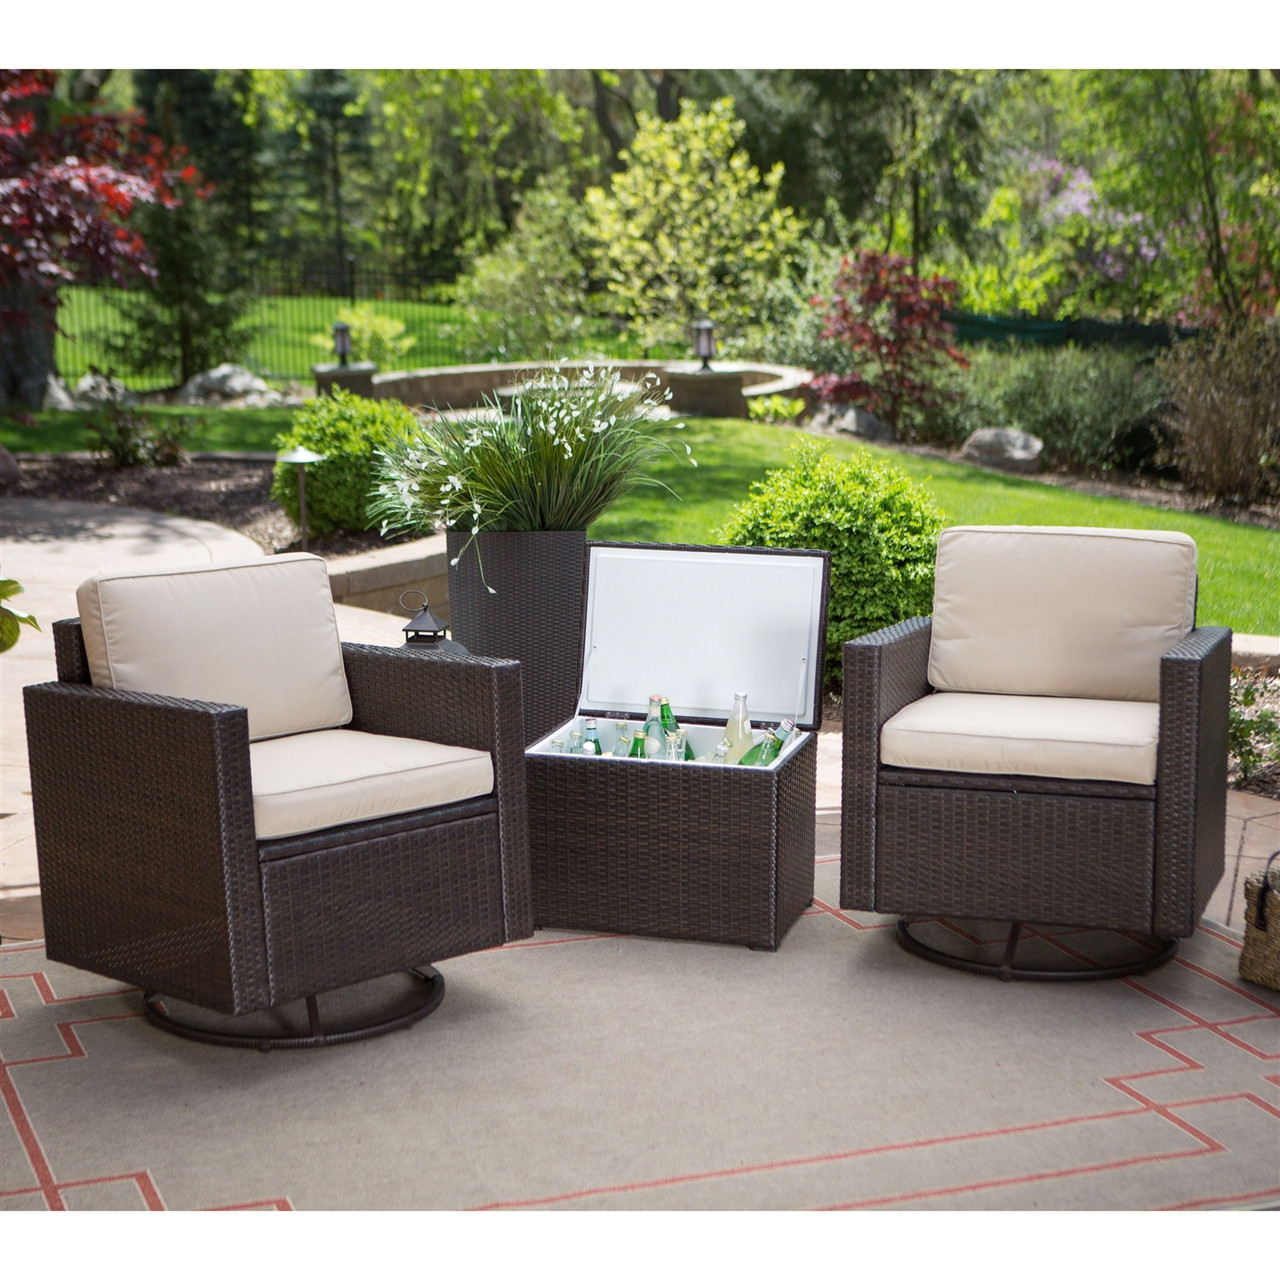 Resin Garden Table And Chair Sets: Wicker Resin 3 PC Patio Furniture Set, 2 Chairs, Cooler